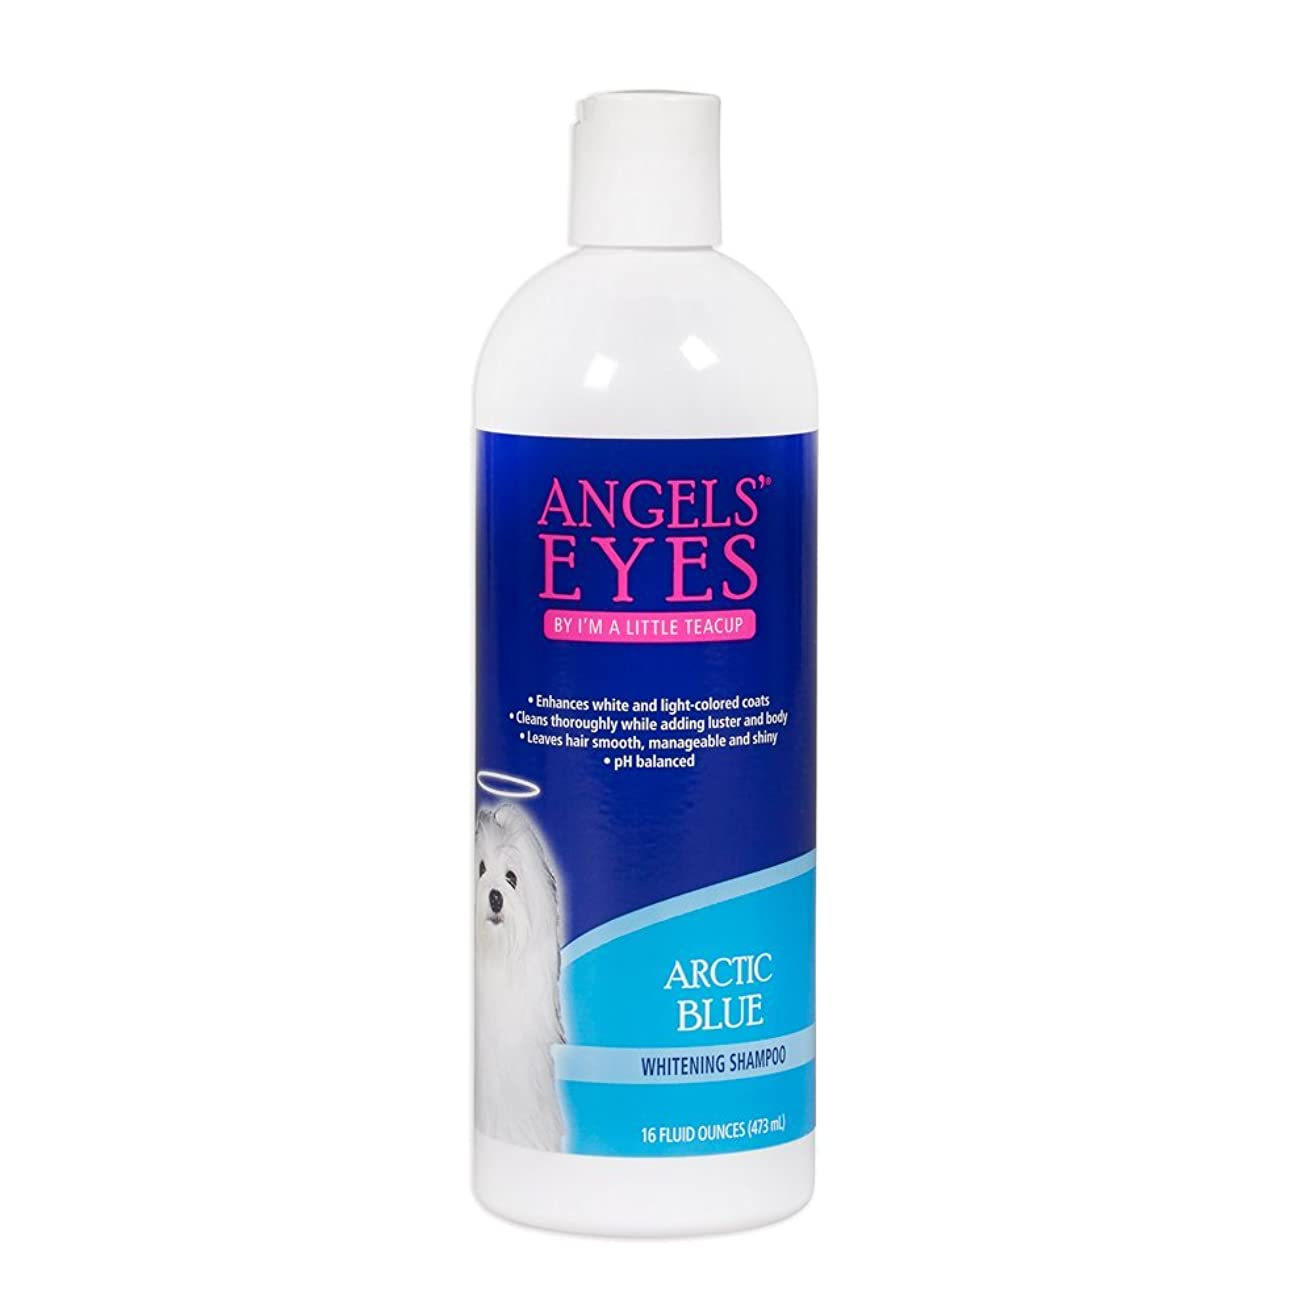 Angels' Eyes Arctic Blue Whitening Shampoo, 16-Ounce